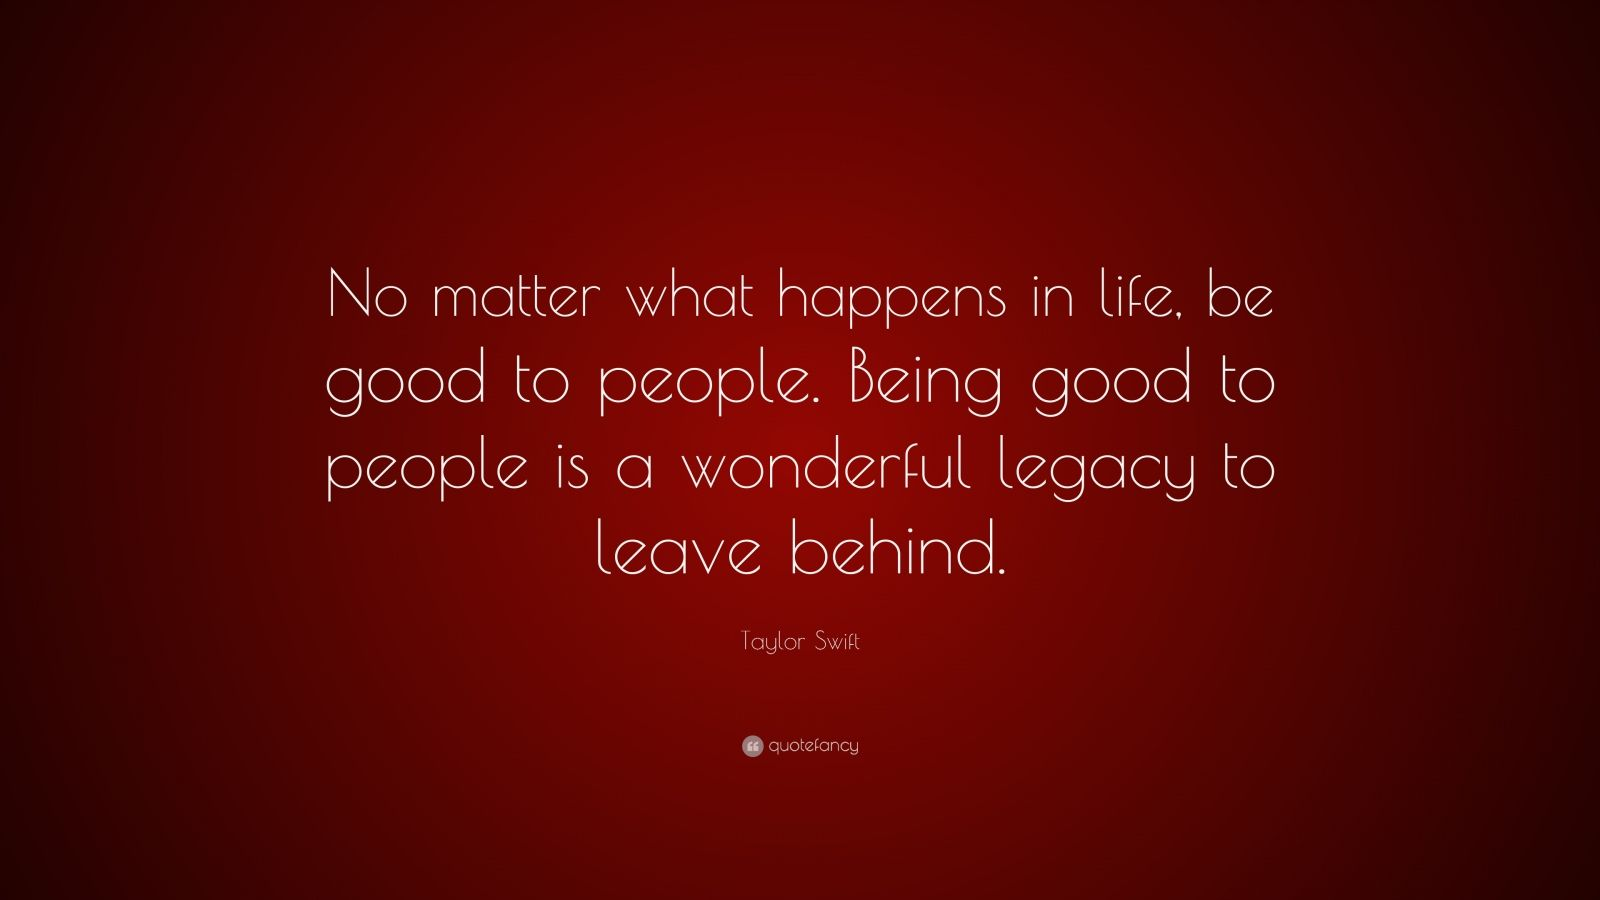 """Taylor Swift Quote: """"No matter what happens in life, be good to people. Being good to people is a wonderful legacy to leave behind."""""""